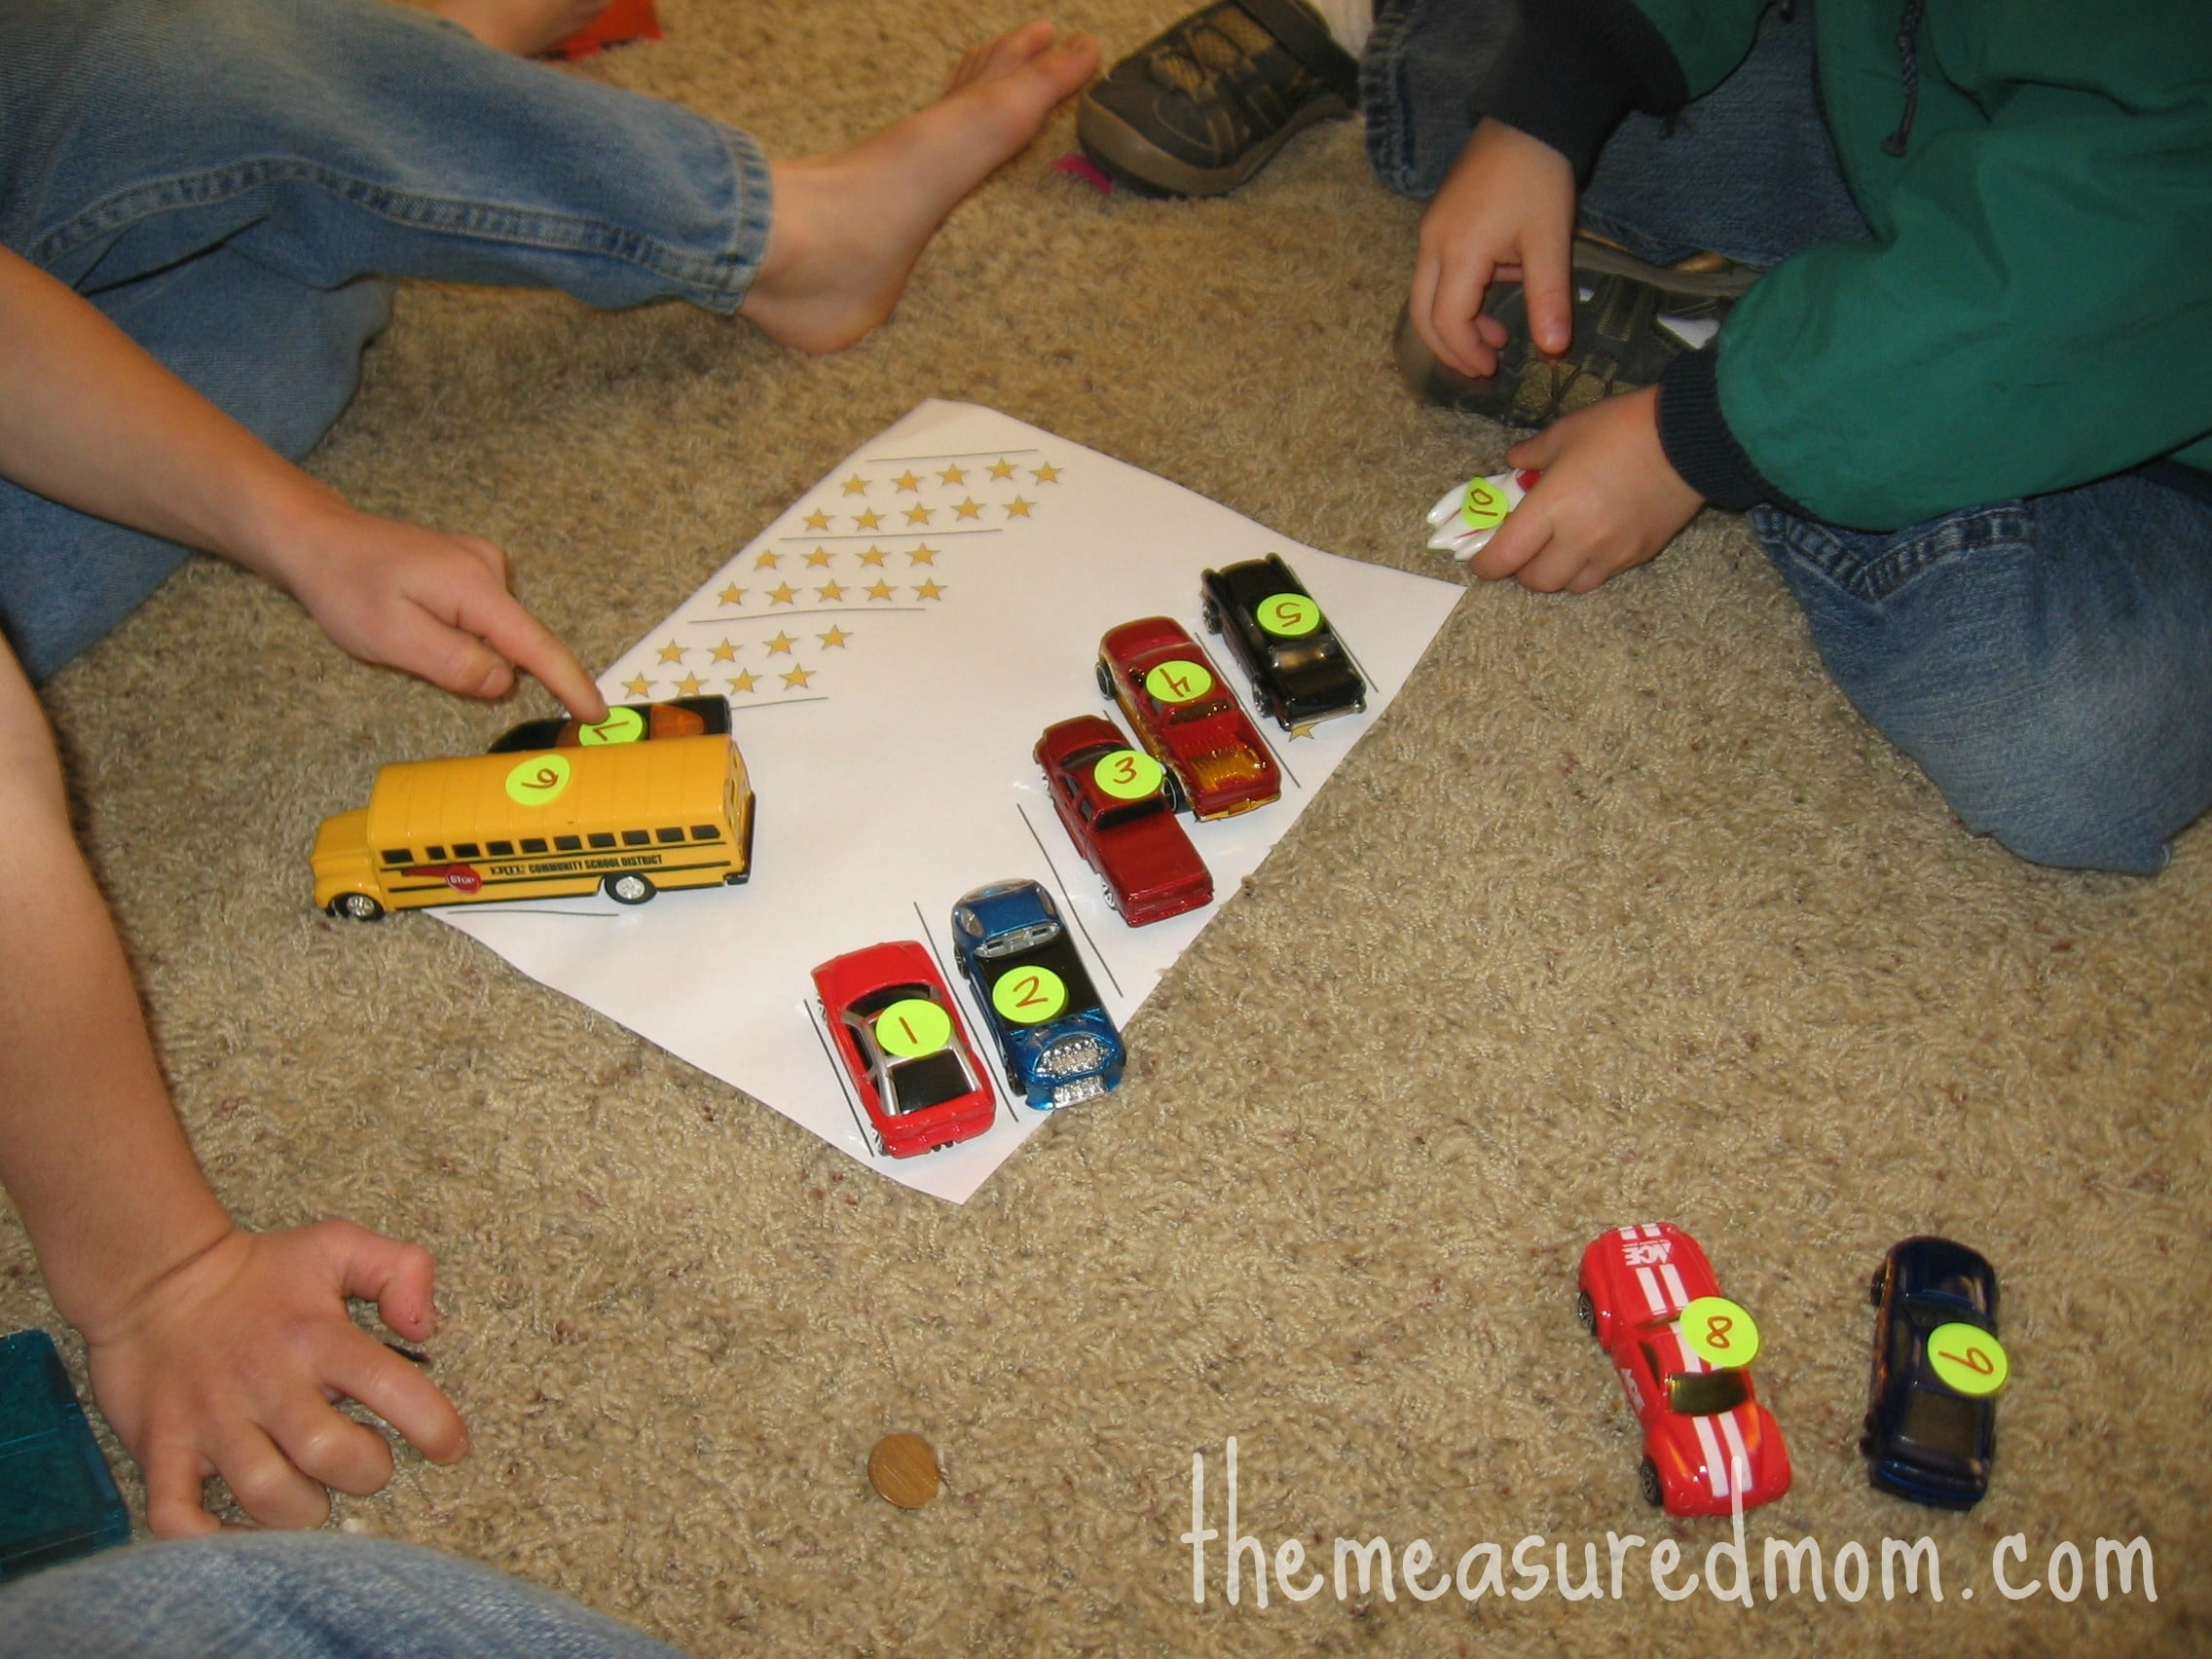 Preschool Toys And Games : Preschool math ideas using toy vehicles the